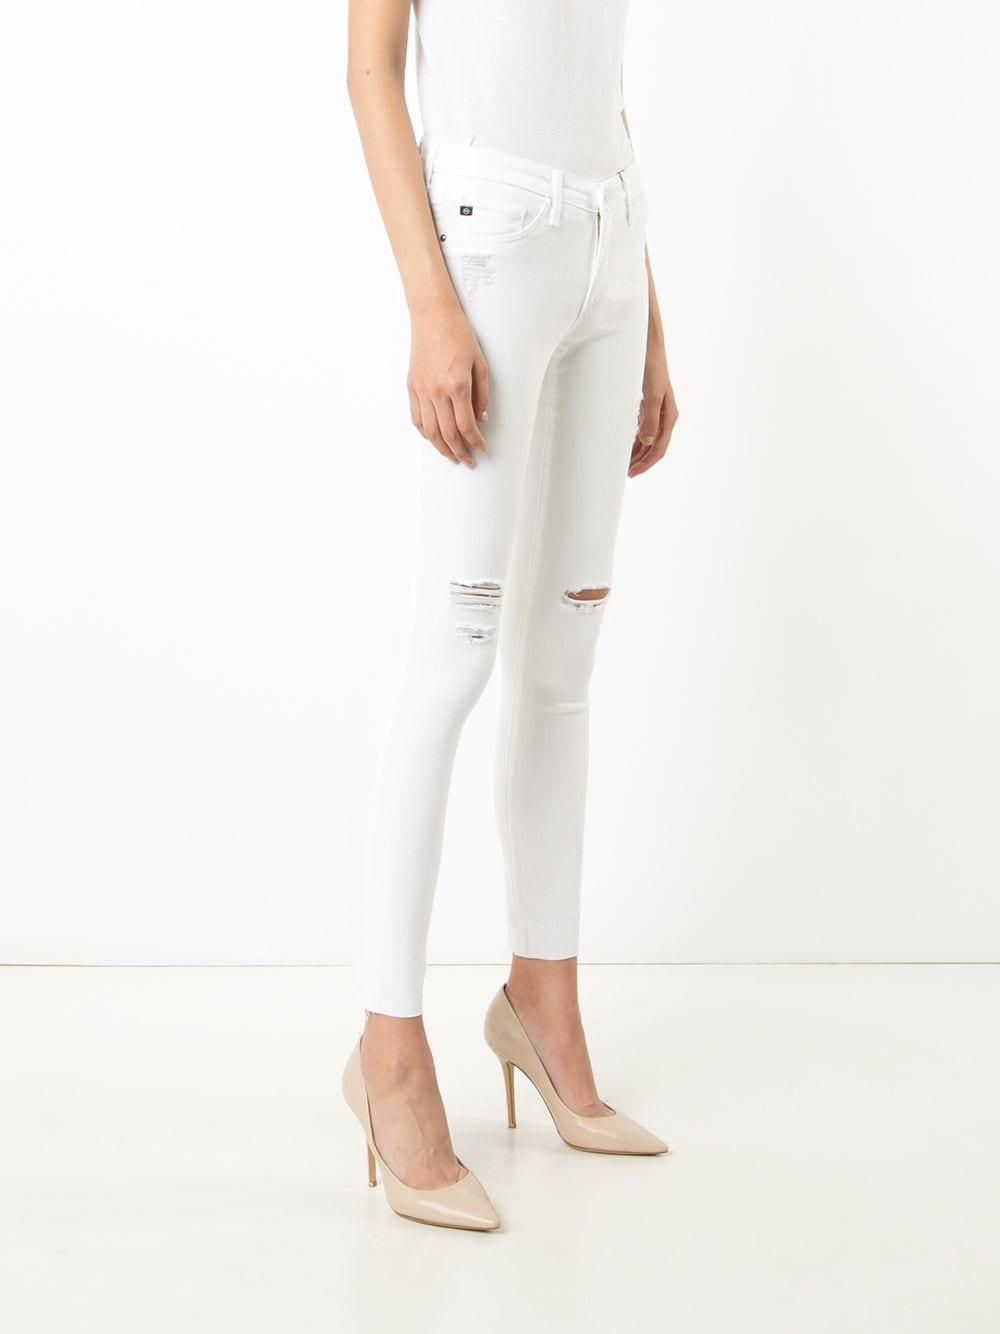 AG Jeans Denim Distressed Skinny Jeans in White